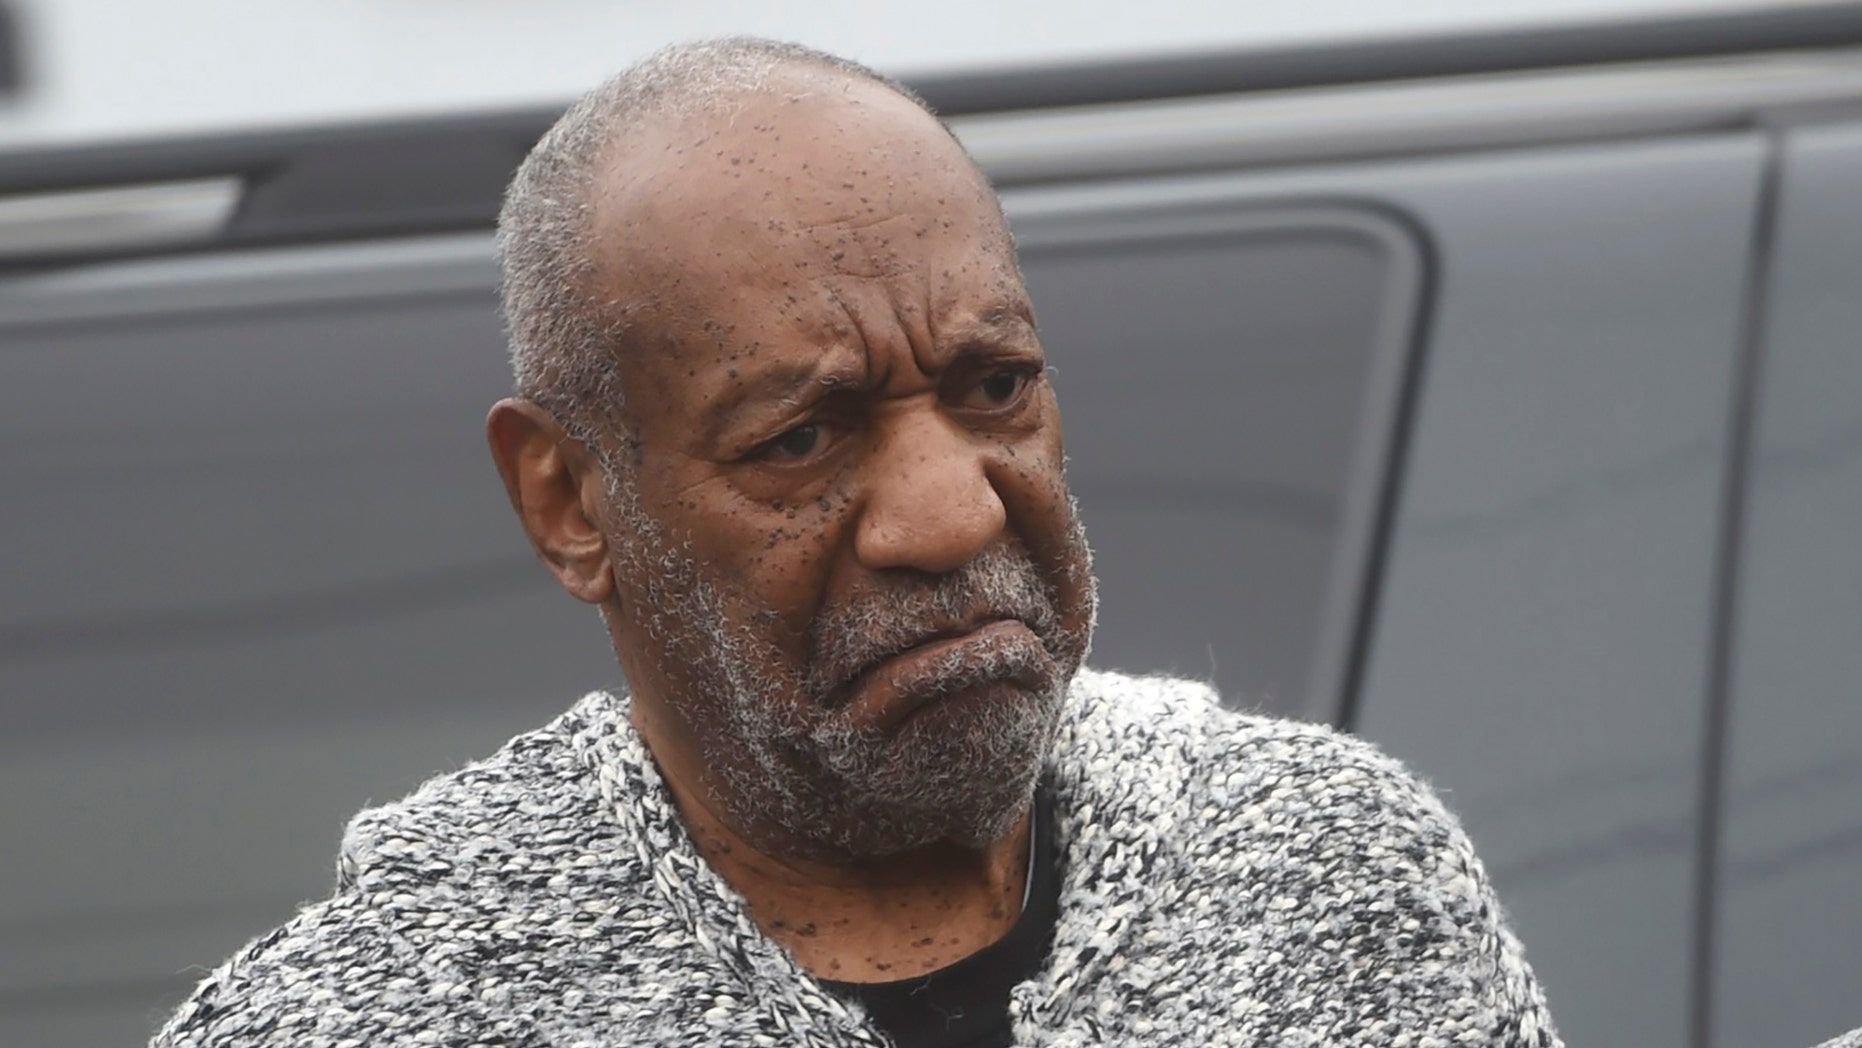 Cosby's reputation is in tatters, but he is still revered at his alma mater.